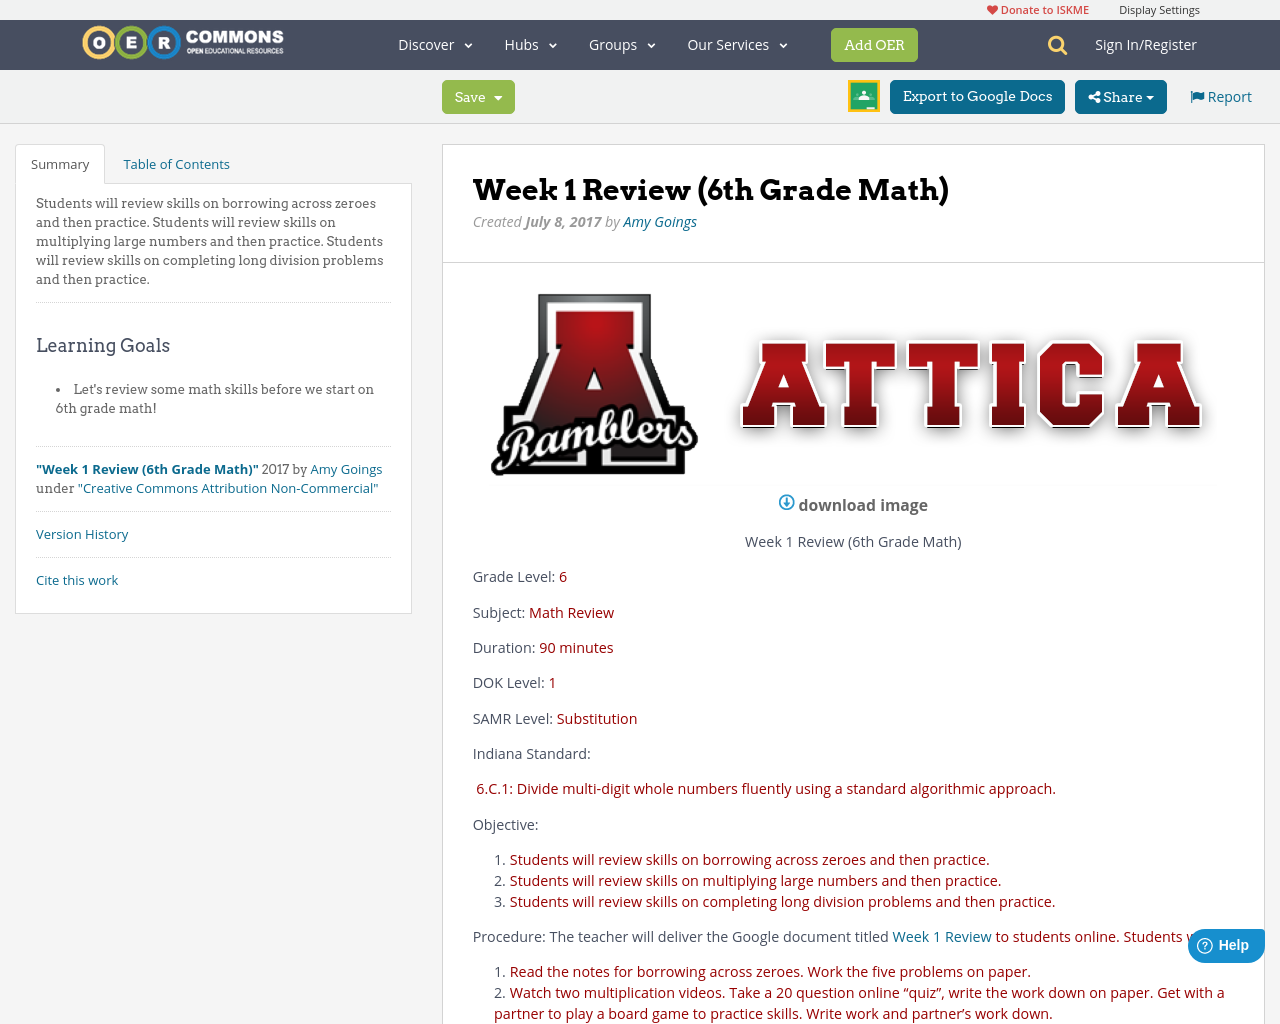 Week 1 Review 6th Grade Math Oer Commons